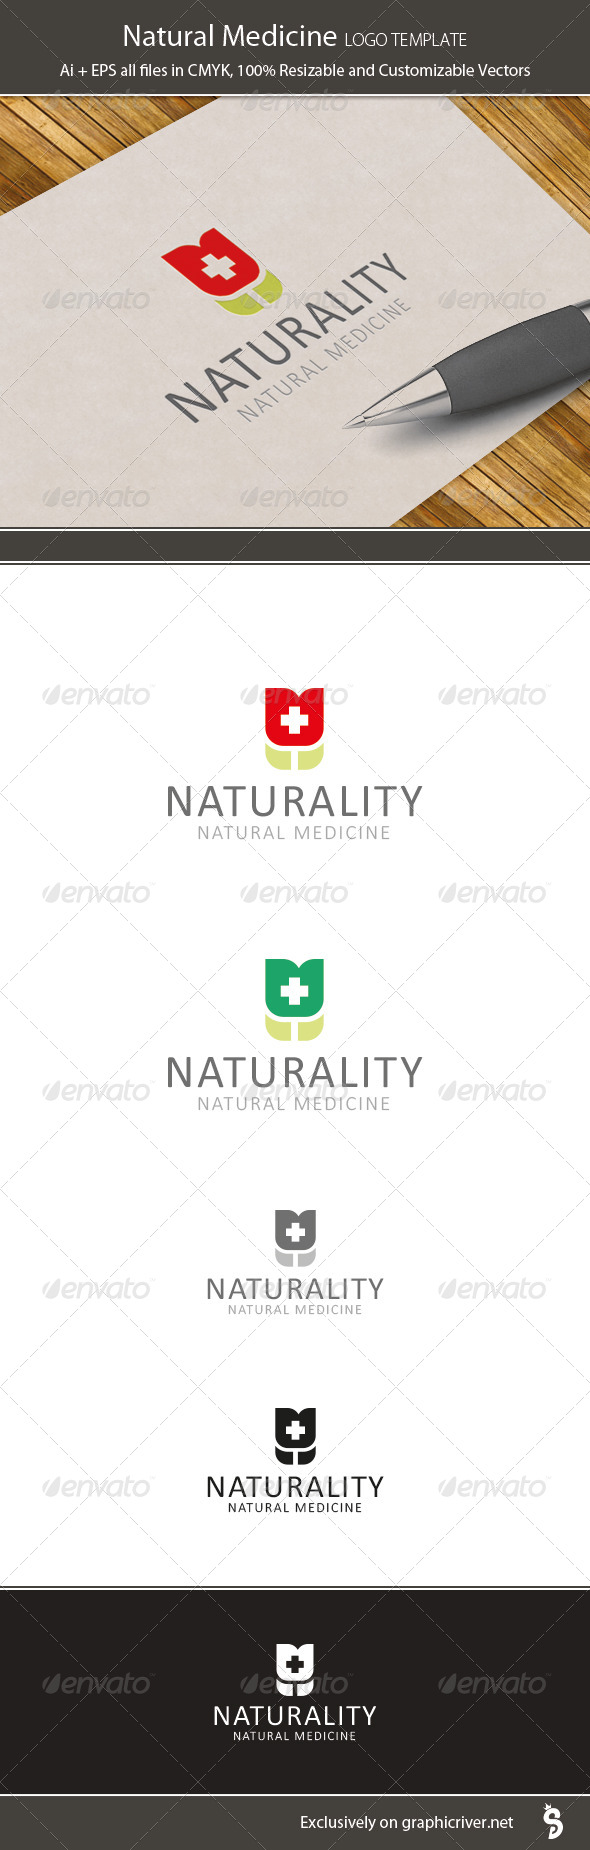 Natural Medicine Logo Template - Vector Abstract